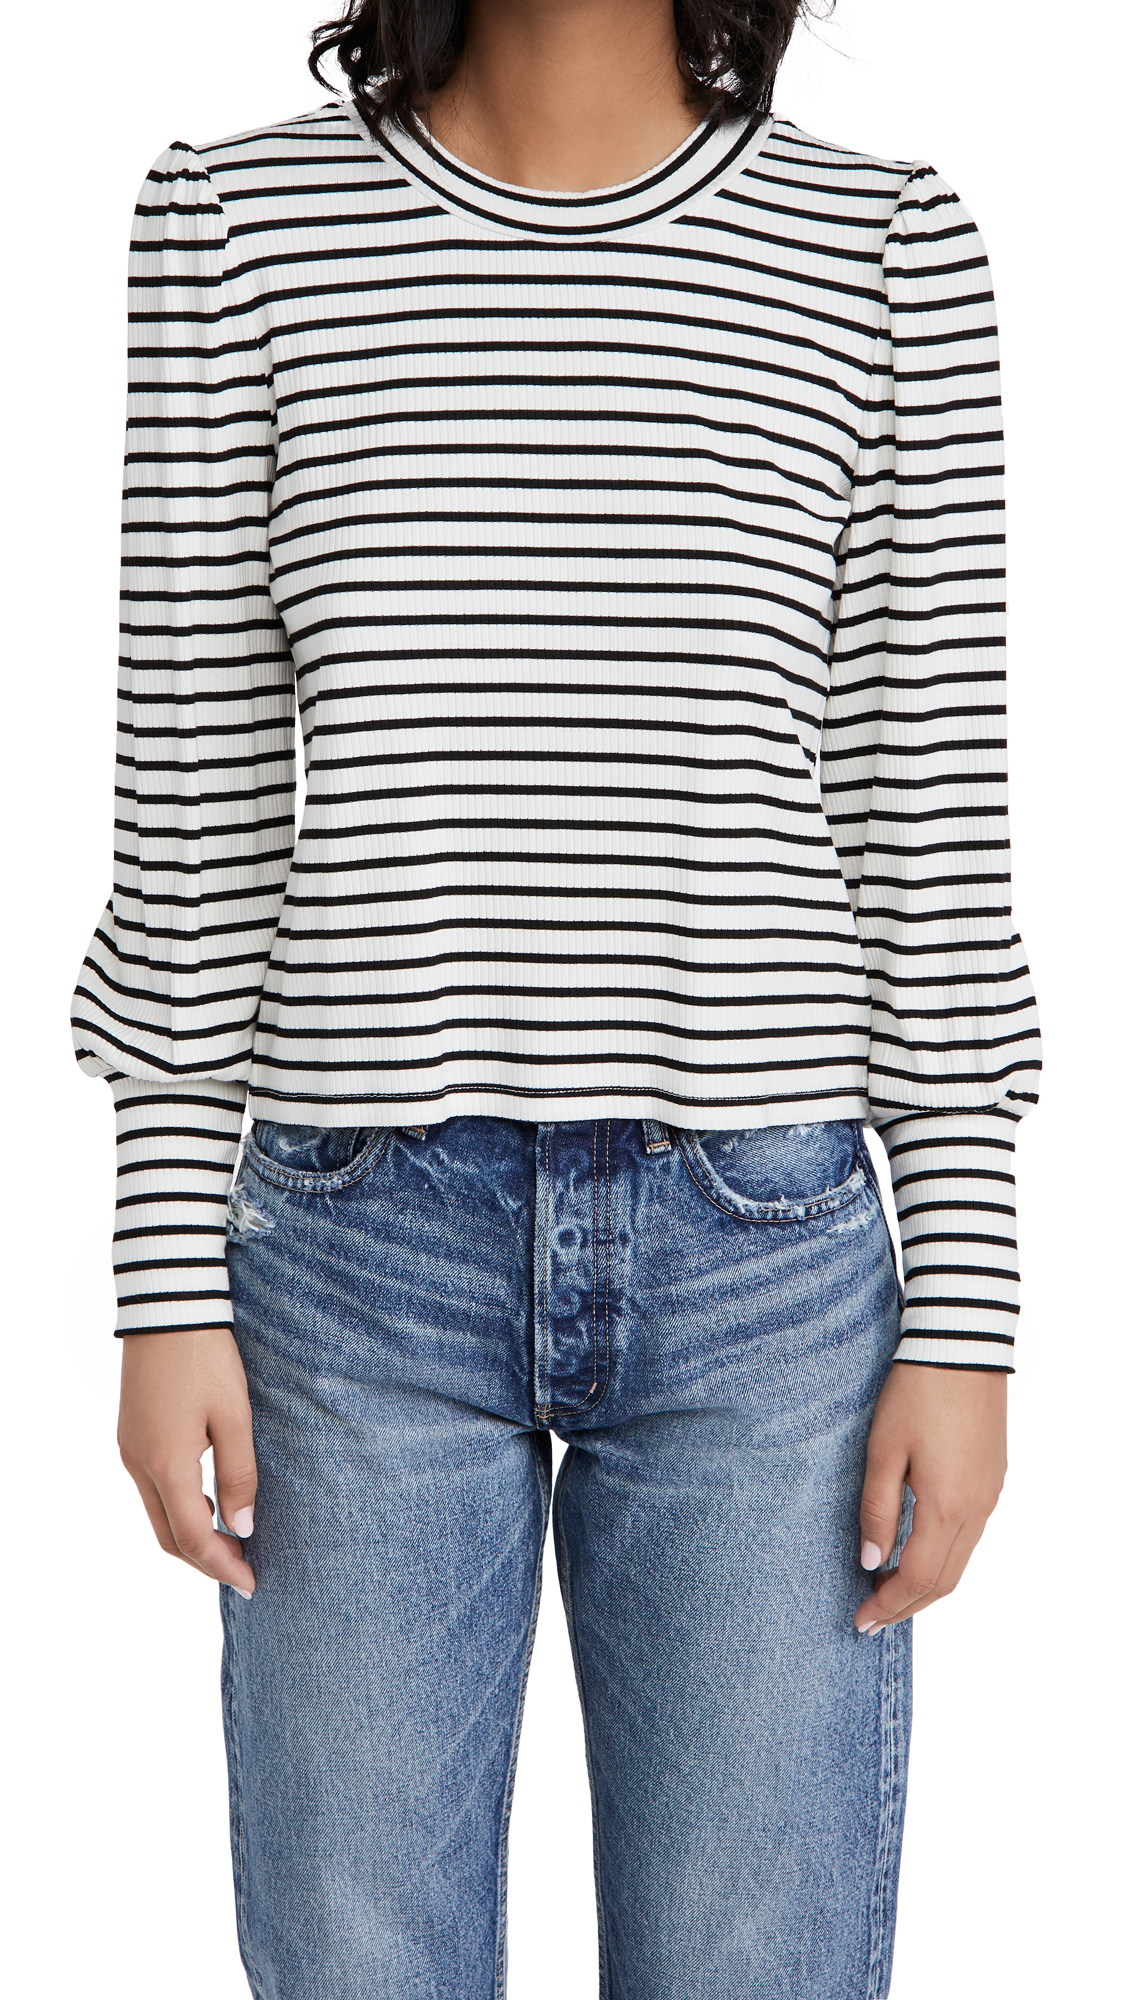 Z Supply CLEMENTE STRIPED PUFF SLEEVE SHIRT